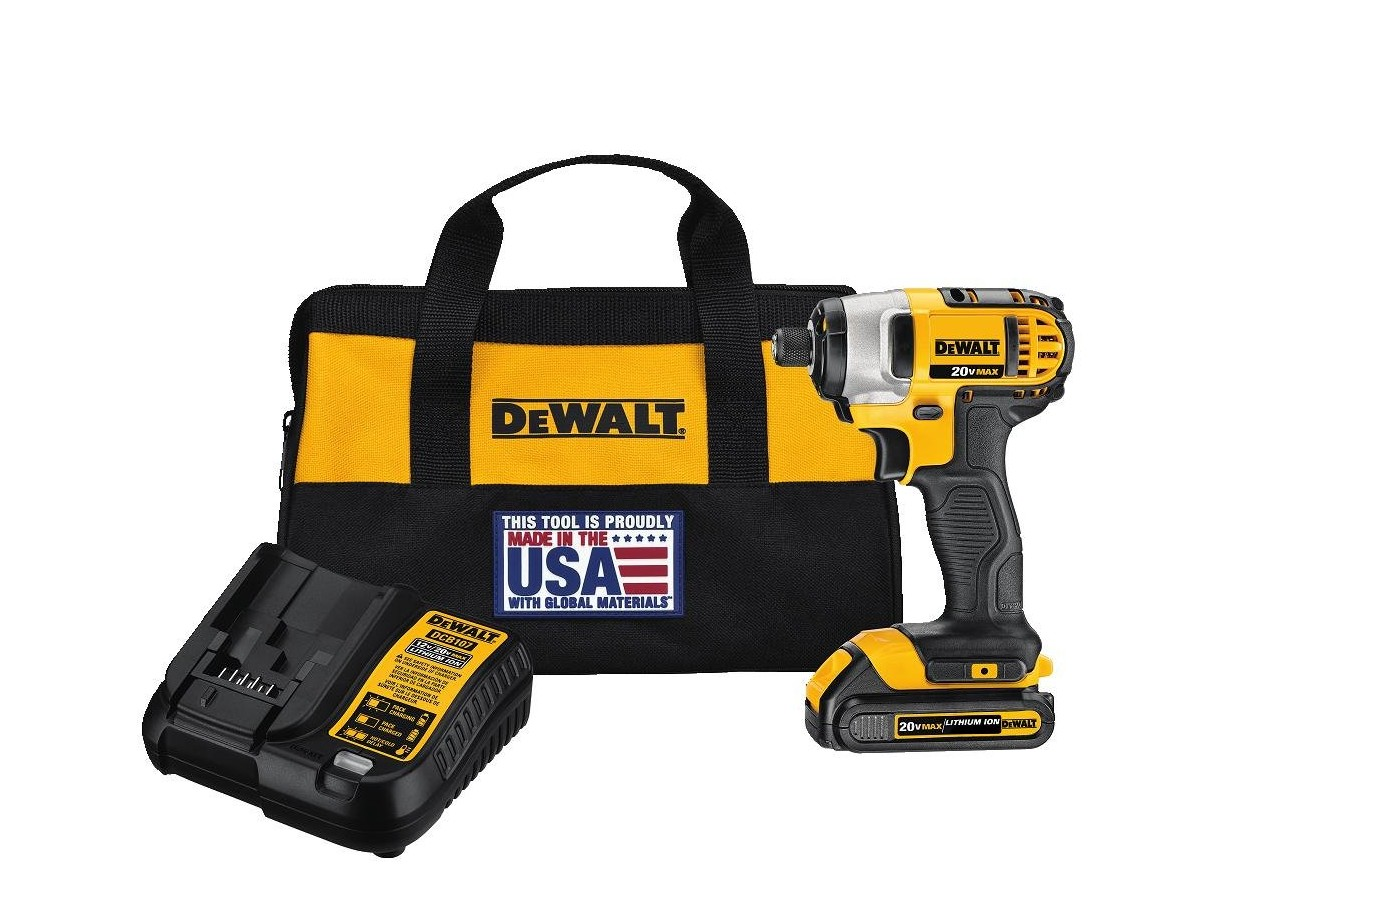 The drill is lightweight and compact